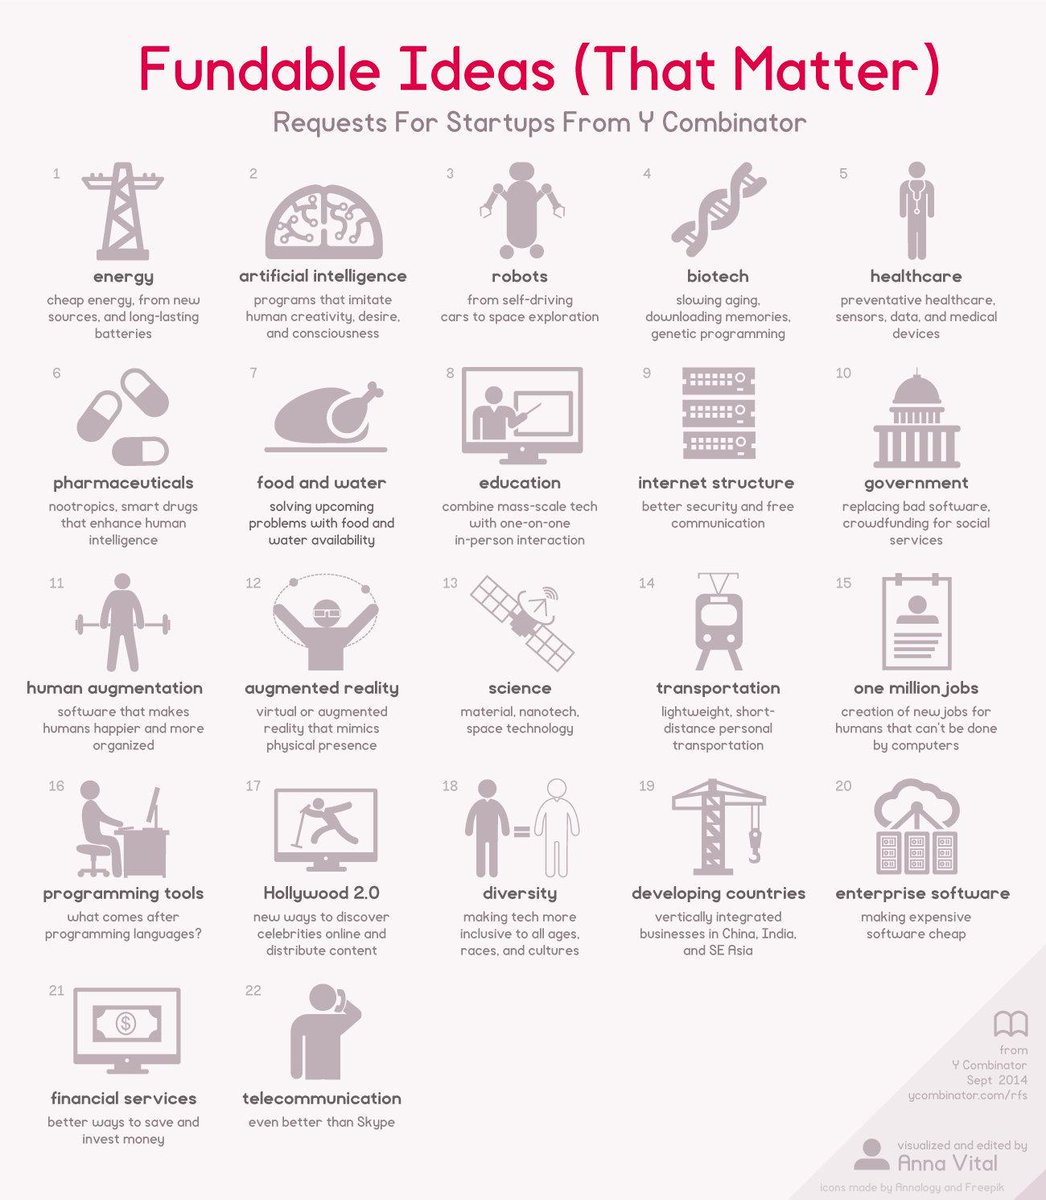 """@startupturkey: Fundable Ideas - that matter http://t.co/uM3fouxnK4"" اى حاجة وكل حاجة"